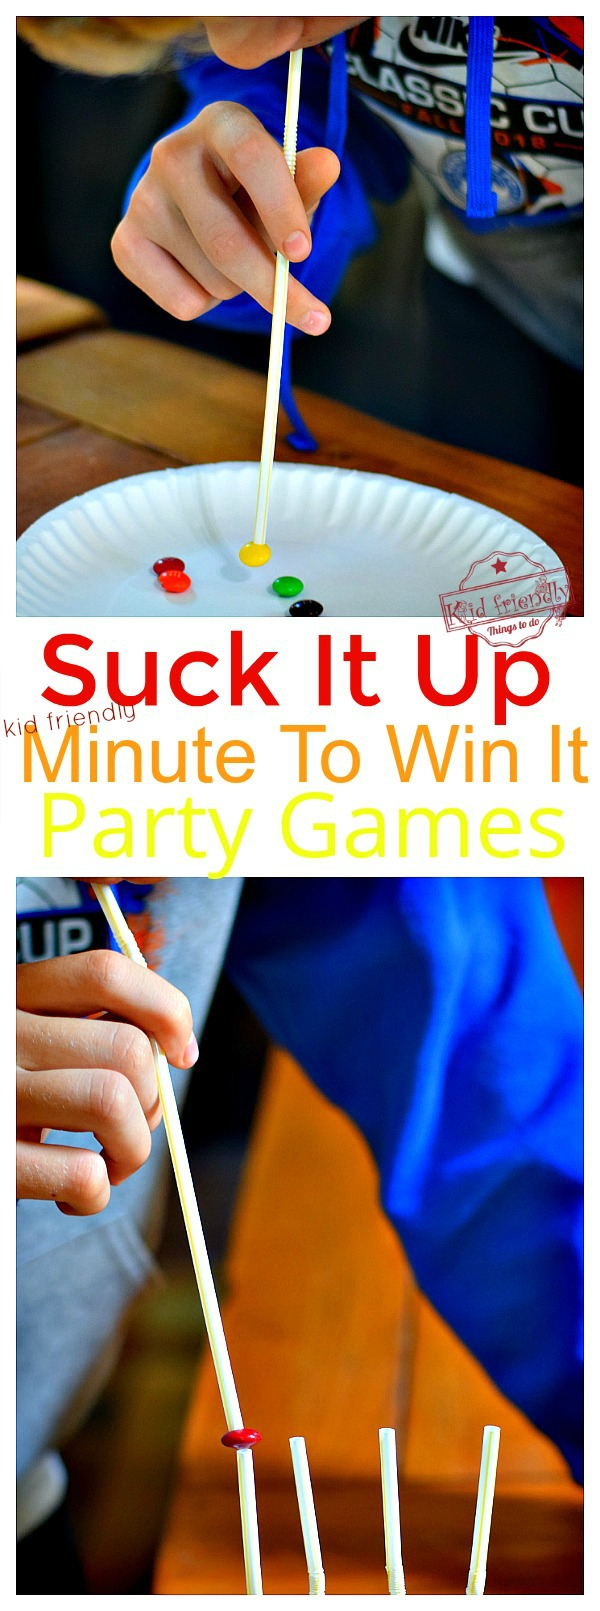 suck it up minute to win it game for teens